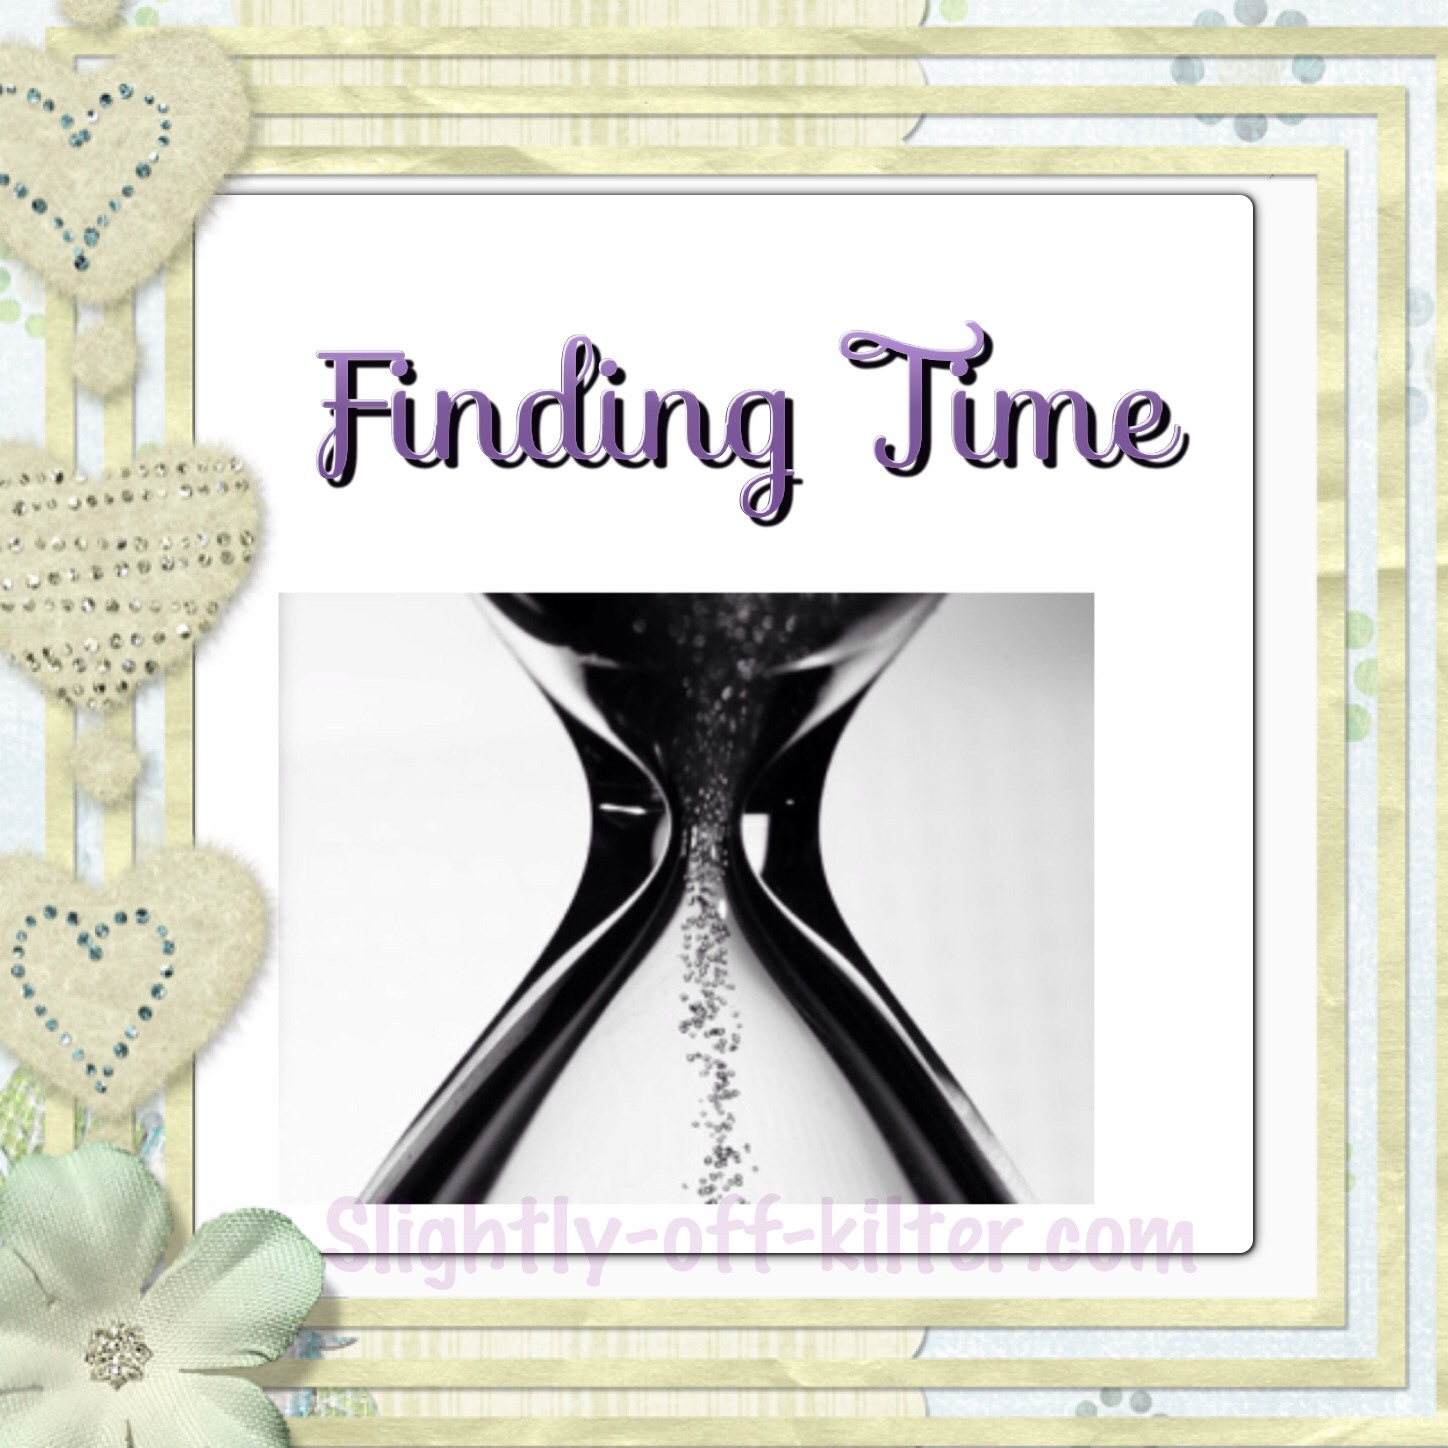 Finding Time - Slightly-off-kilter.com